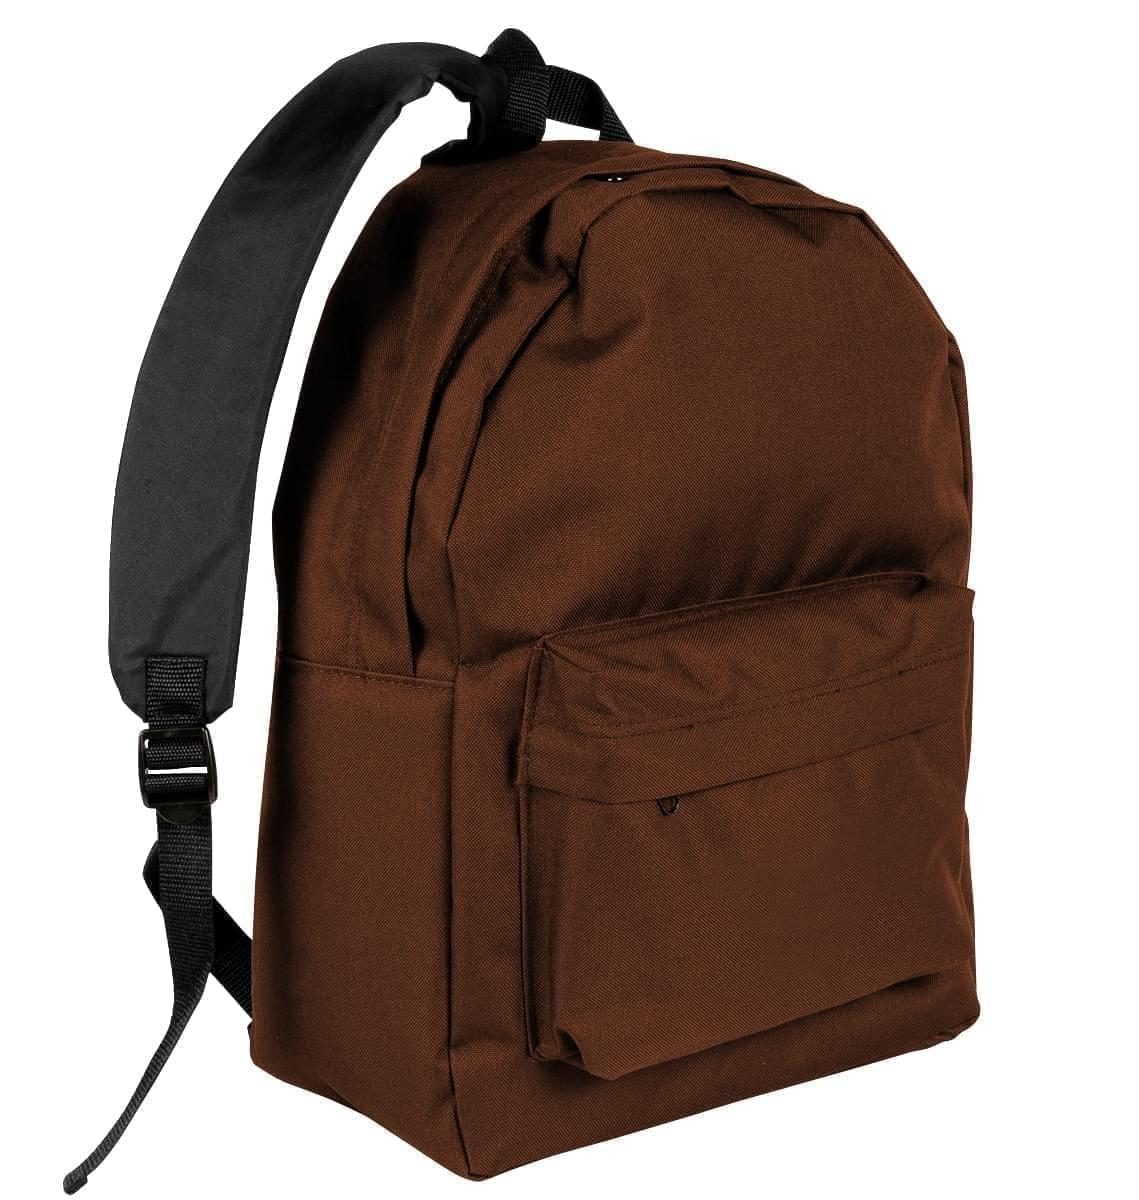 USA Made Nylon Poly Backpack Knapsacks, Brown-Black, 8960-APR